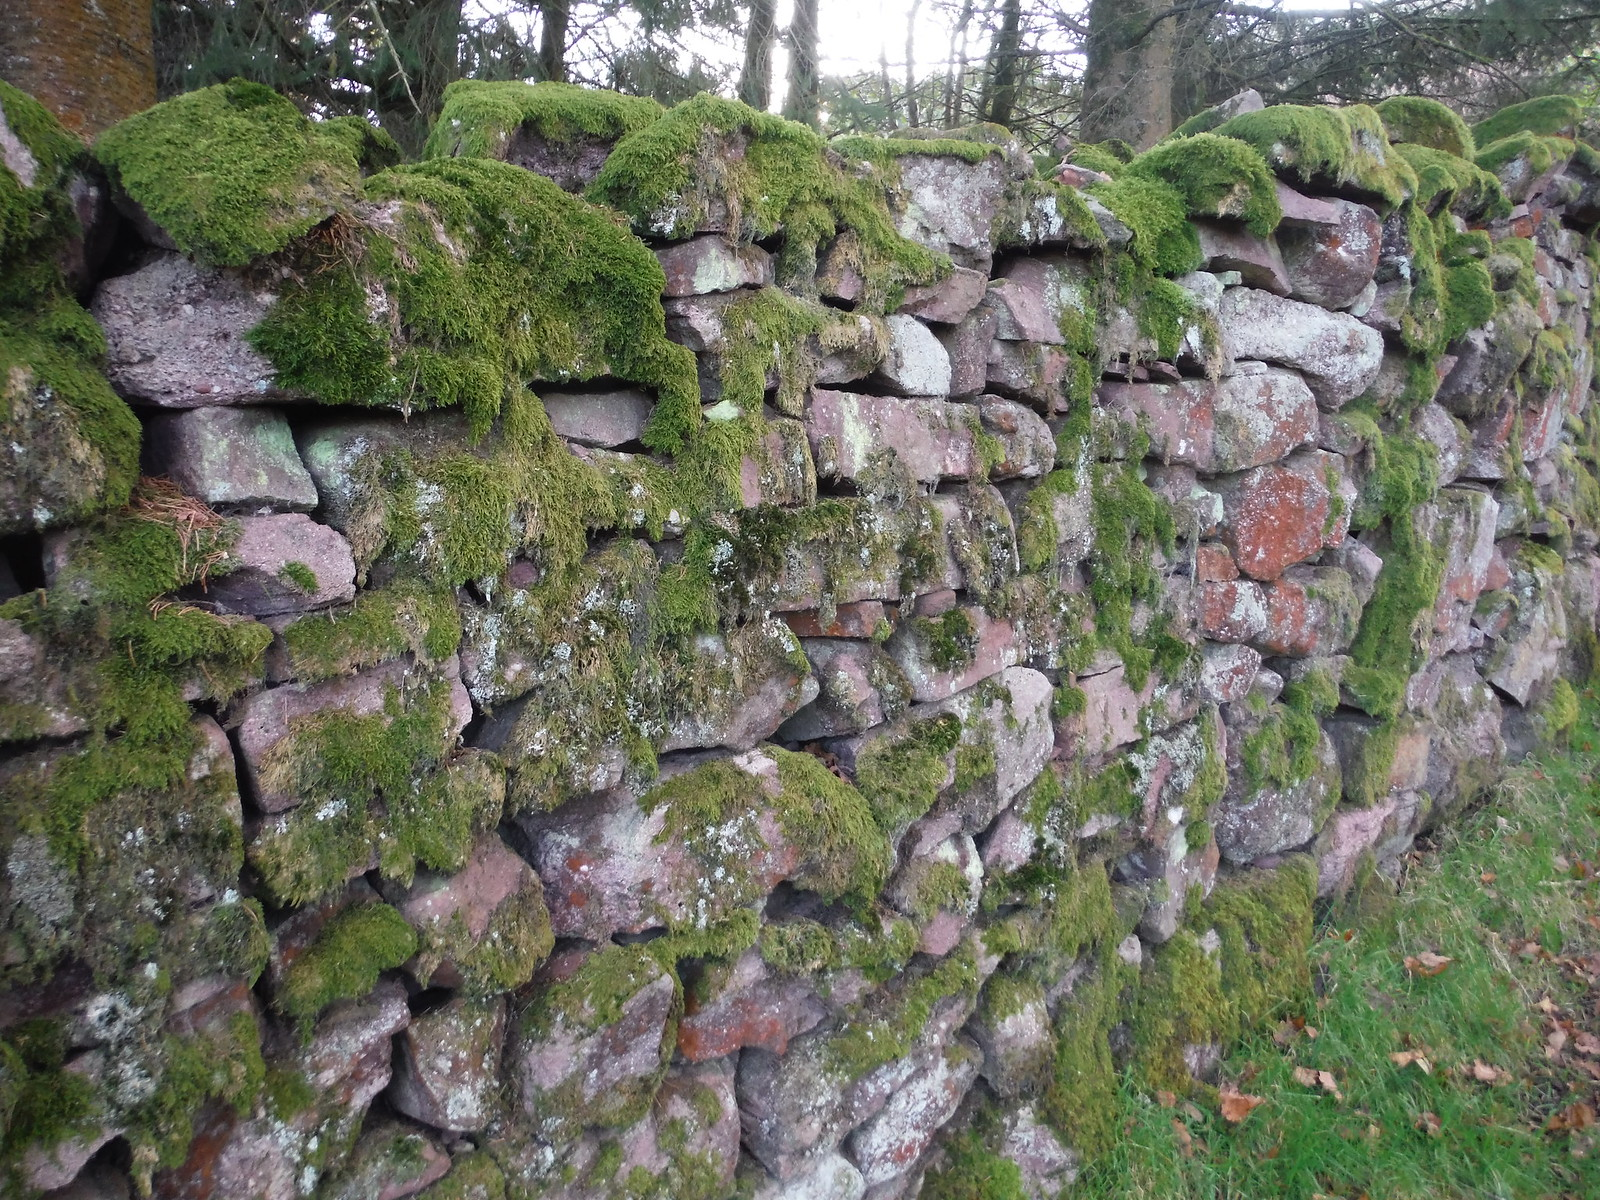 Mossy Drystone Wall, along Beacons Way SWC Walk 279 The Black Mountain - Y Mynydd Du (Glyntawe Circular)